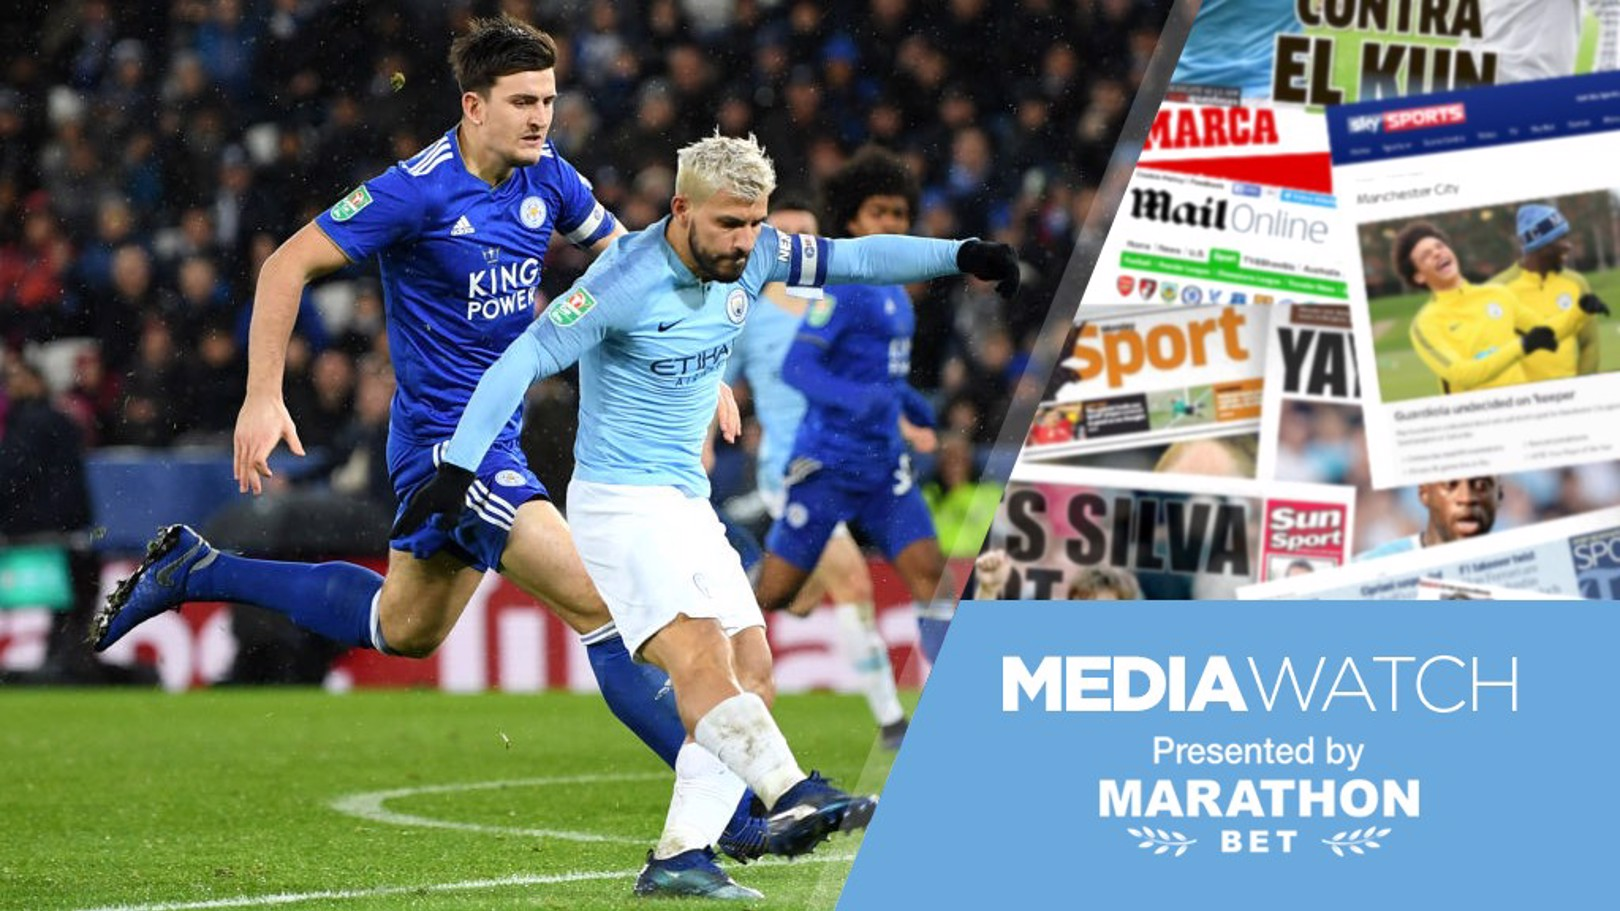 RUMOUR MILL: The press continue to link City with a move for Harry Maguire..